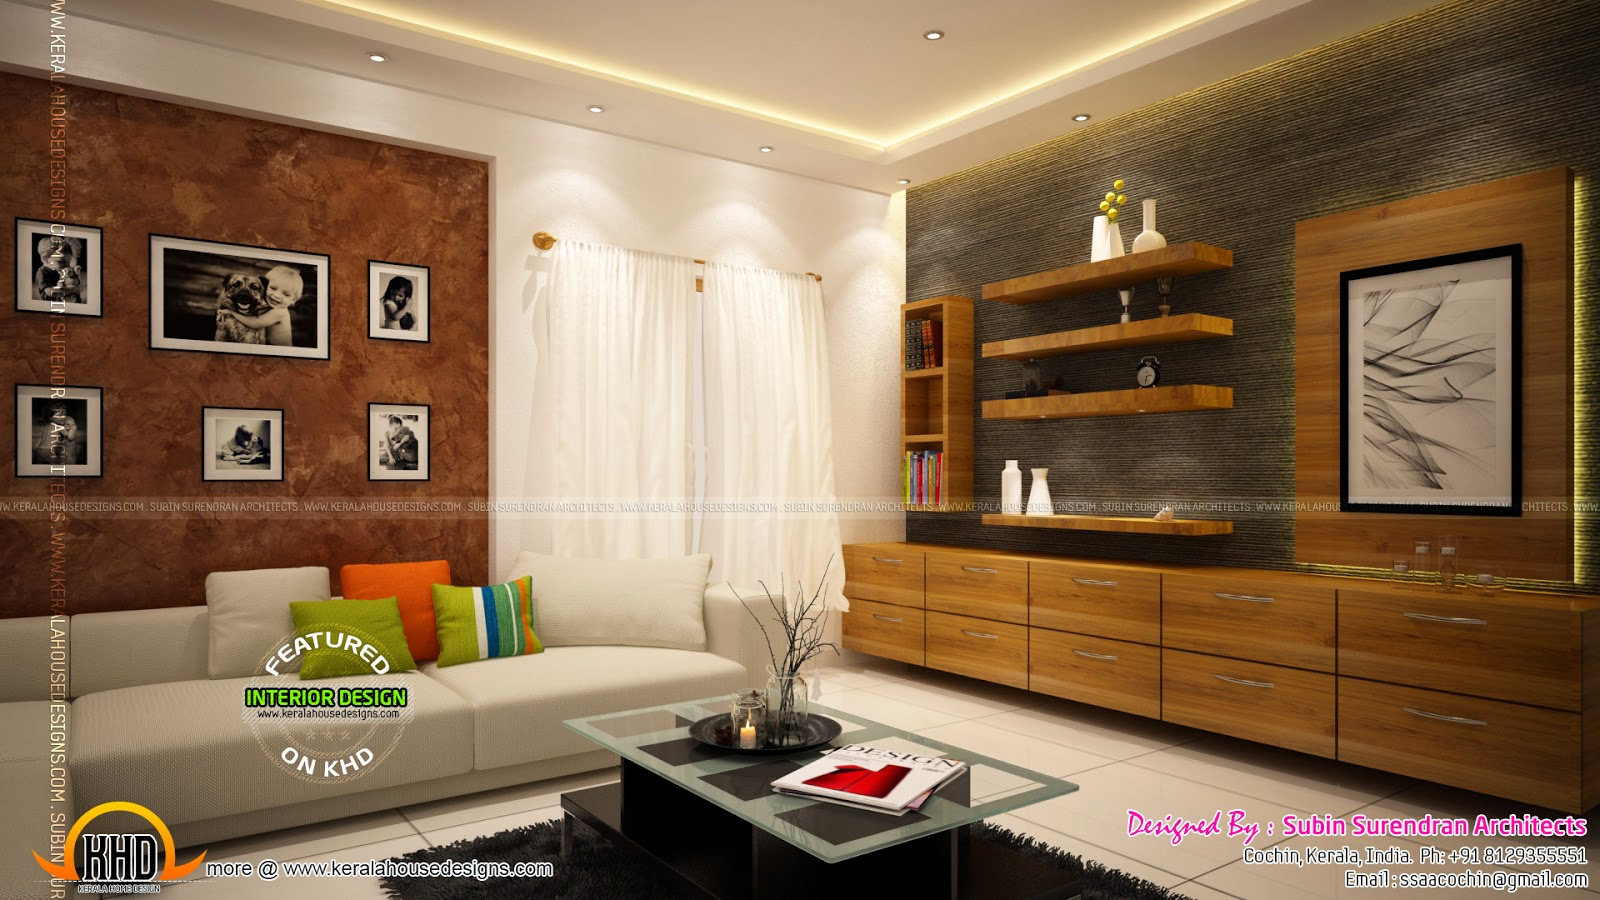 Kerala style low cost double storied home keralahousedesigns - Low cost living room design ideas ...